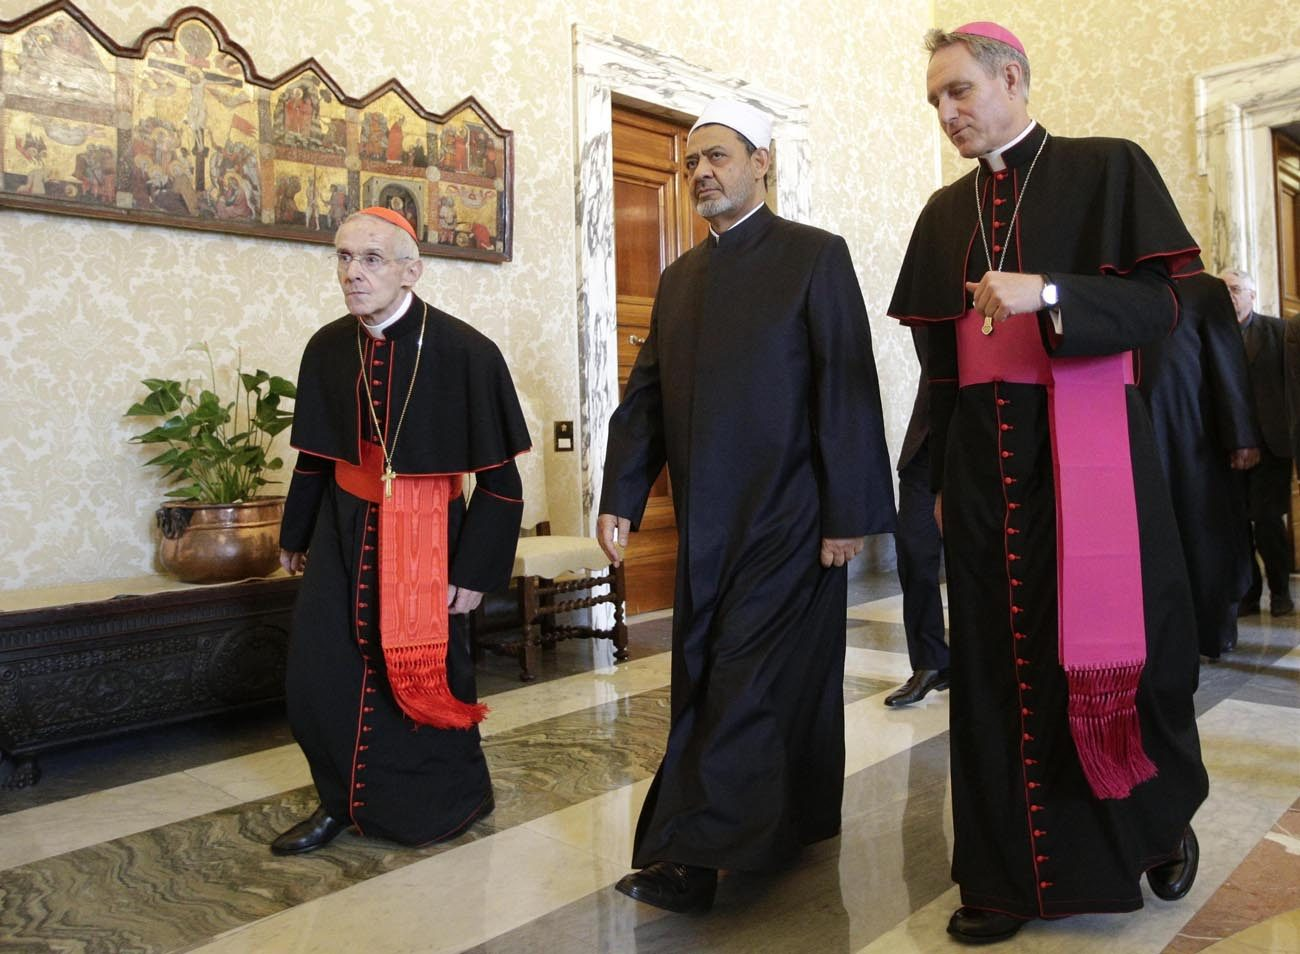 Cardinal Jean-Louis Tauran, left is seen Sheik Ahmad el-Tayeb, grand imam of al-Azhar mosque and university, and Archbishop Georg Gaenswein at the Vatican May 23. The French cardinal said terrorists want to make peace-loving Christians and Muslims believe that it is impossible for them to live side by side; it is up to Christians and Muslims to prove them wrong. (CNS photo/Reuters pool via EPA)